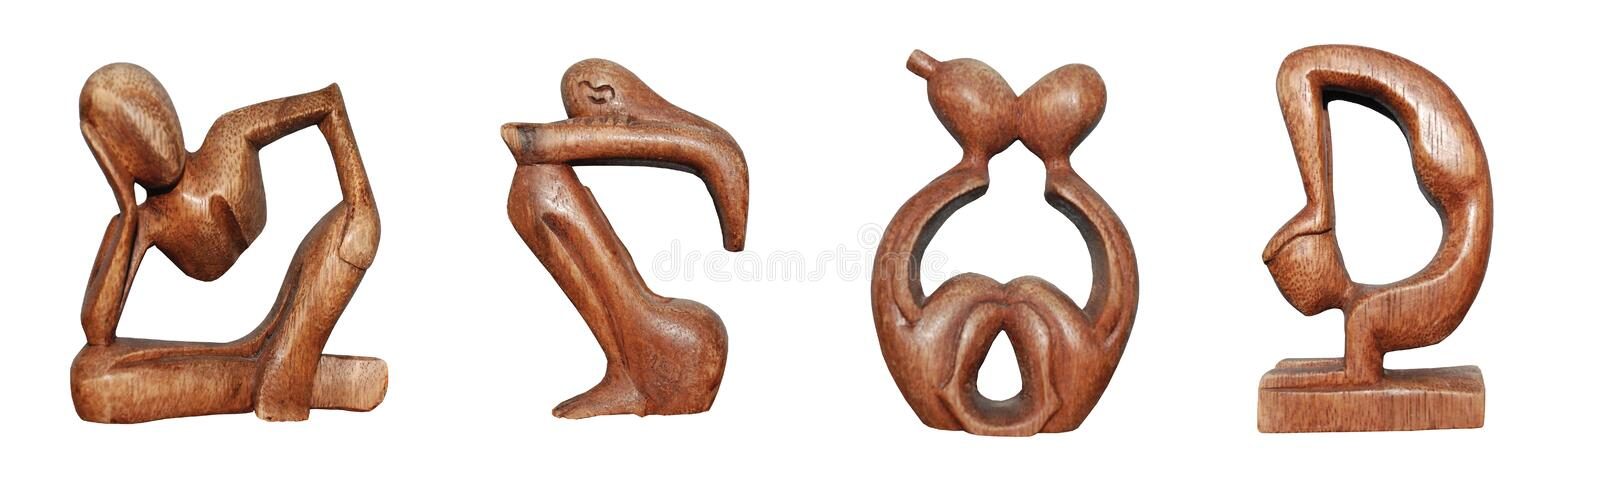 Download Wooden Figurines Royalty Free Stock Photos - Image: 9148038